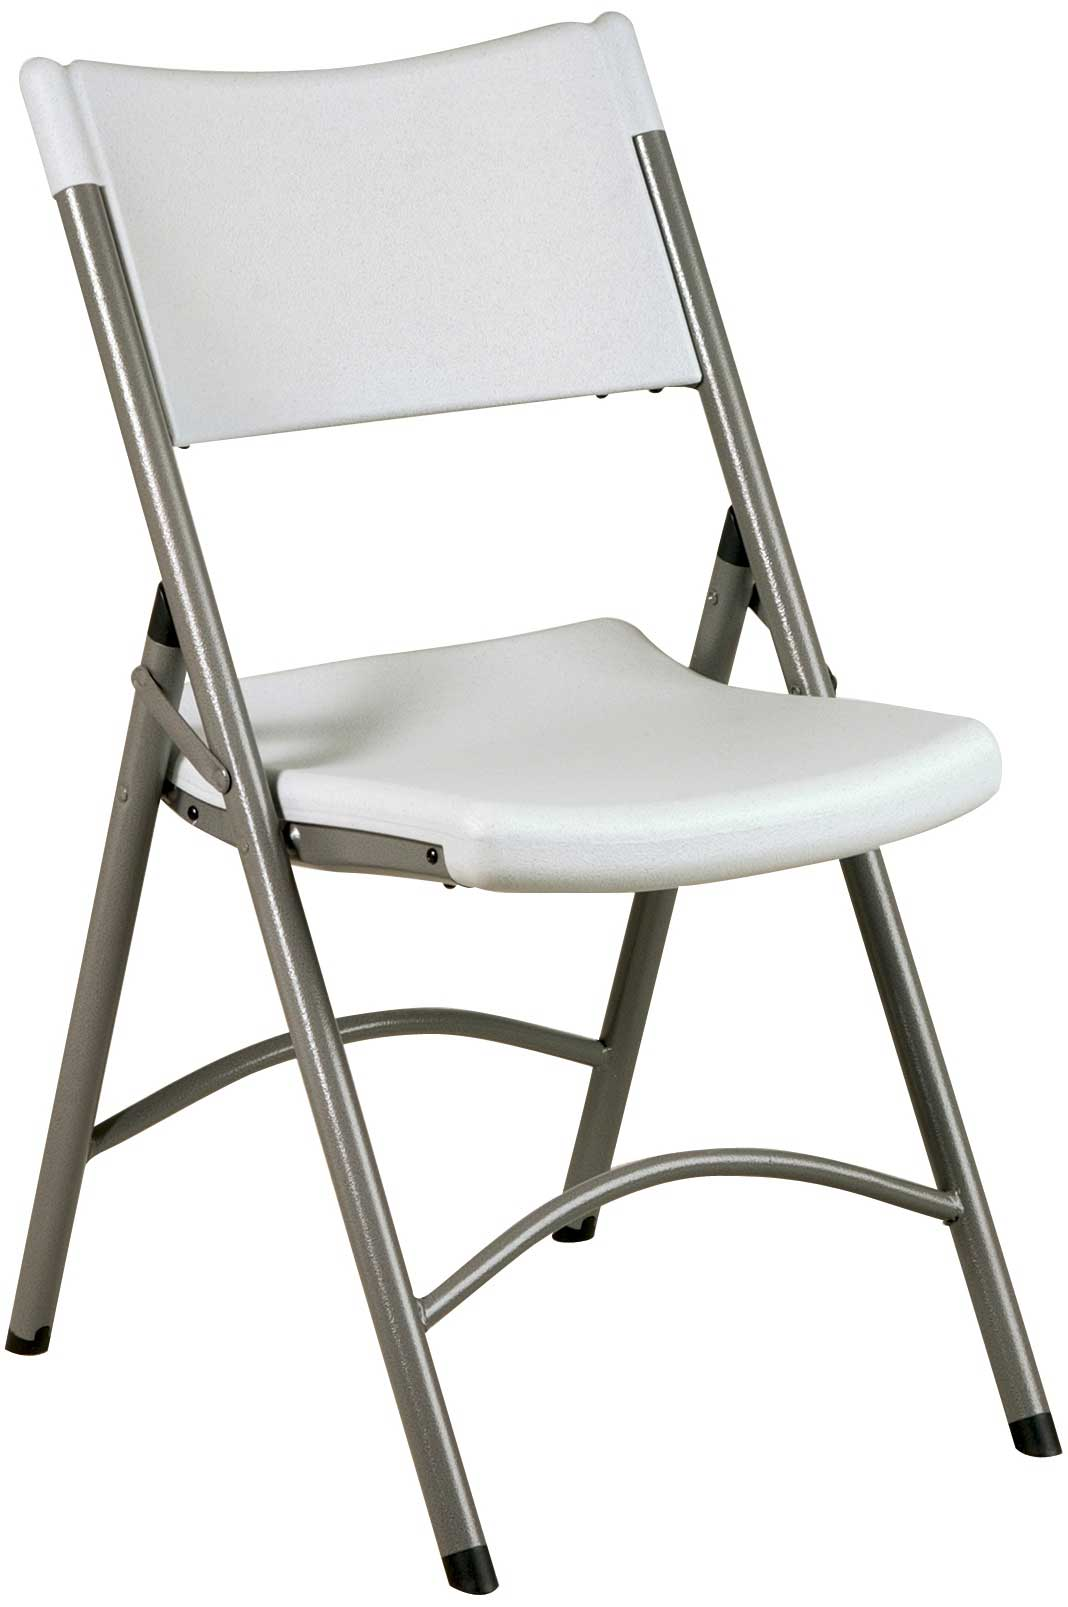 personalized folding chair eames style chairs for waiting room